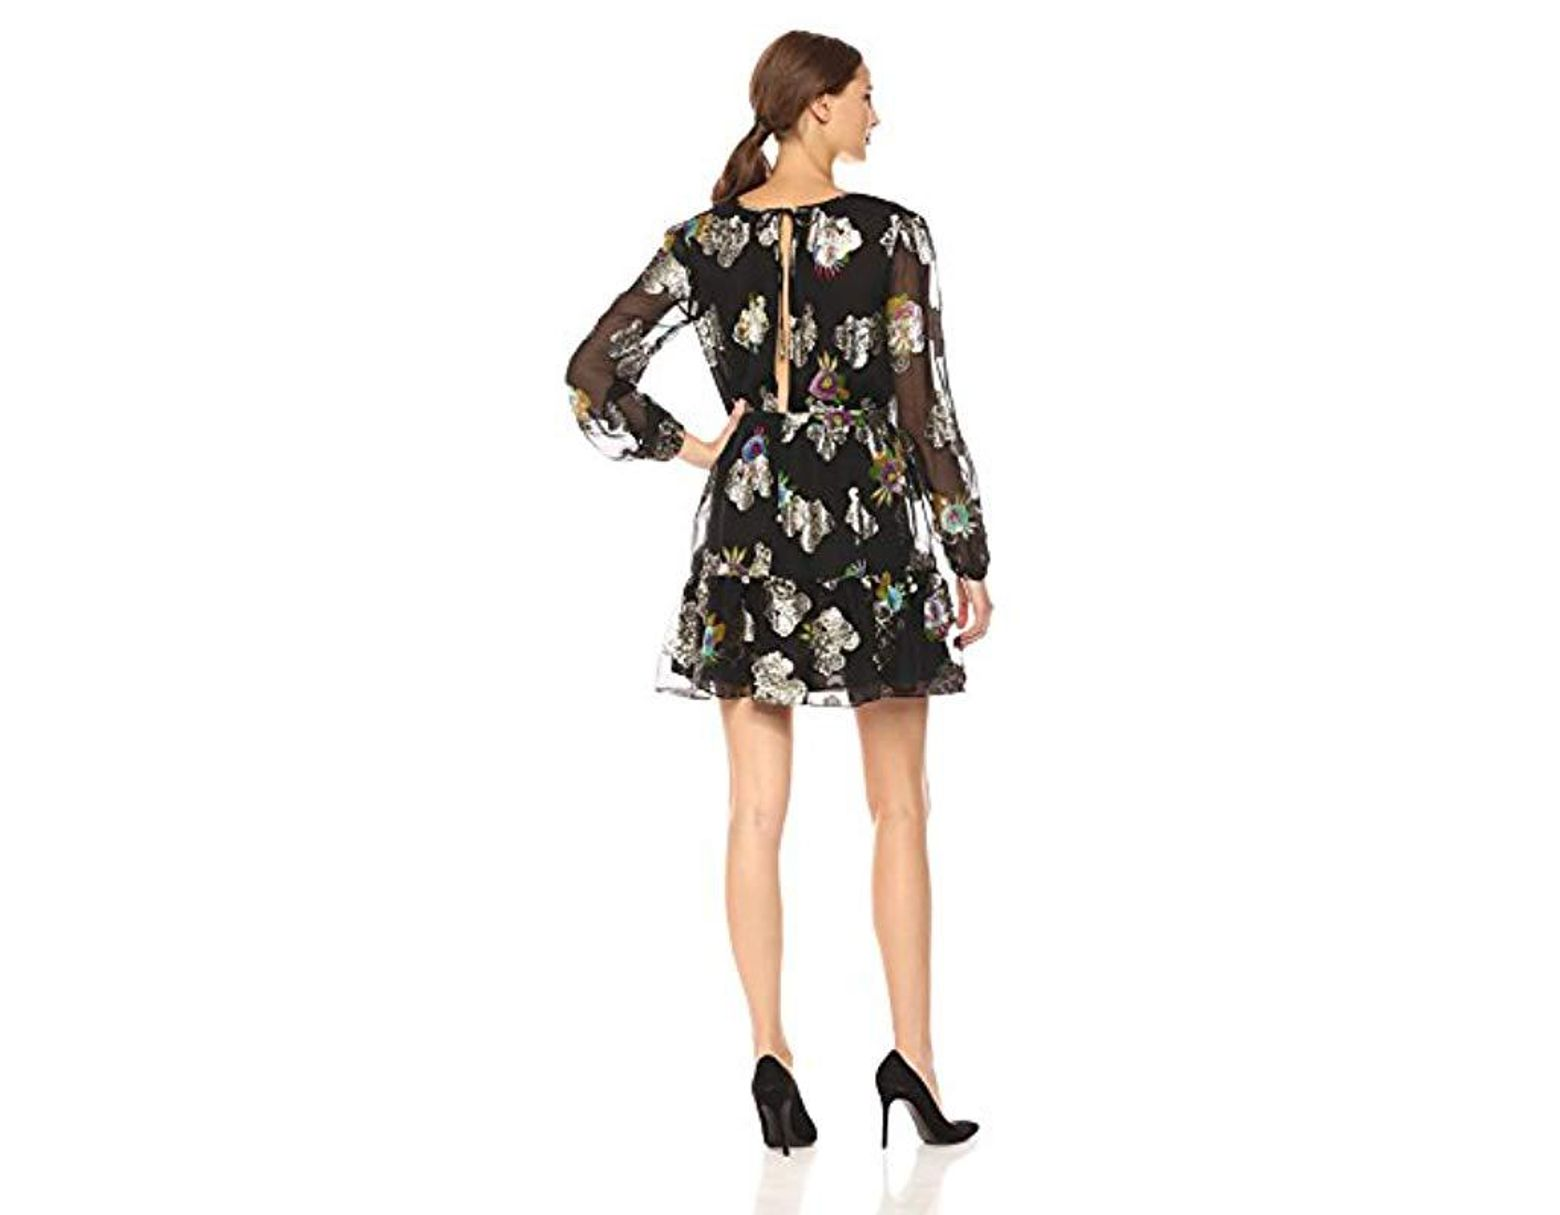 f58956c850 Cynthia Rowley Metallic Long Sleeve Flounce Dress in Black - Save 19% - Lyst